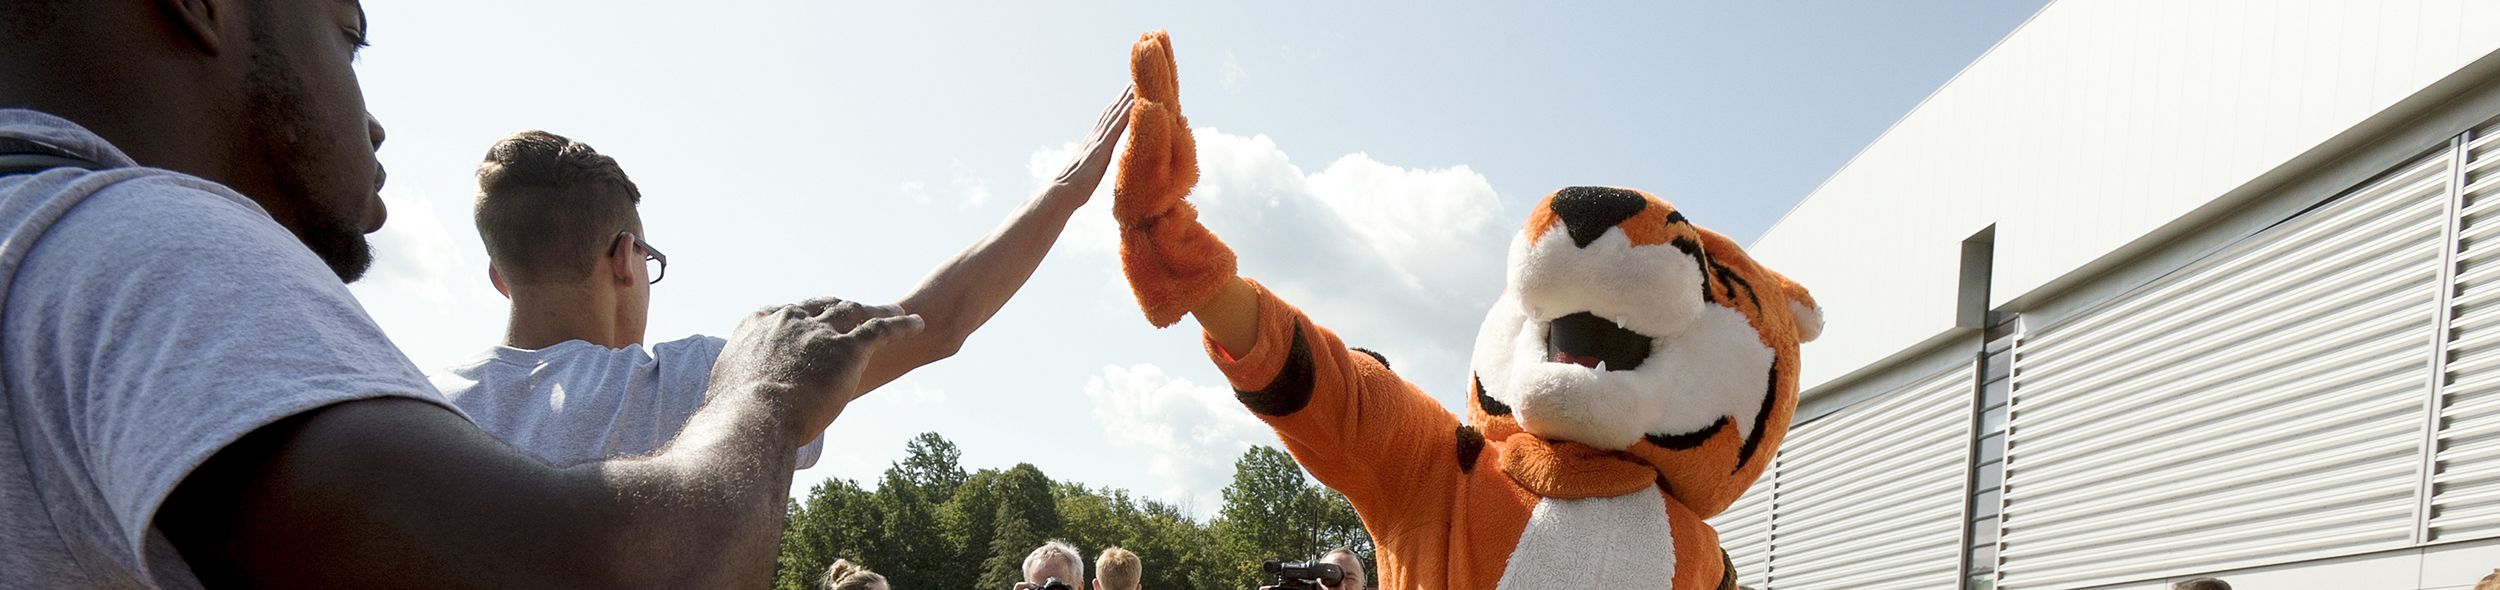 Ritchie the tiger mascot giving high fives to students.